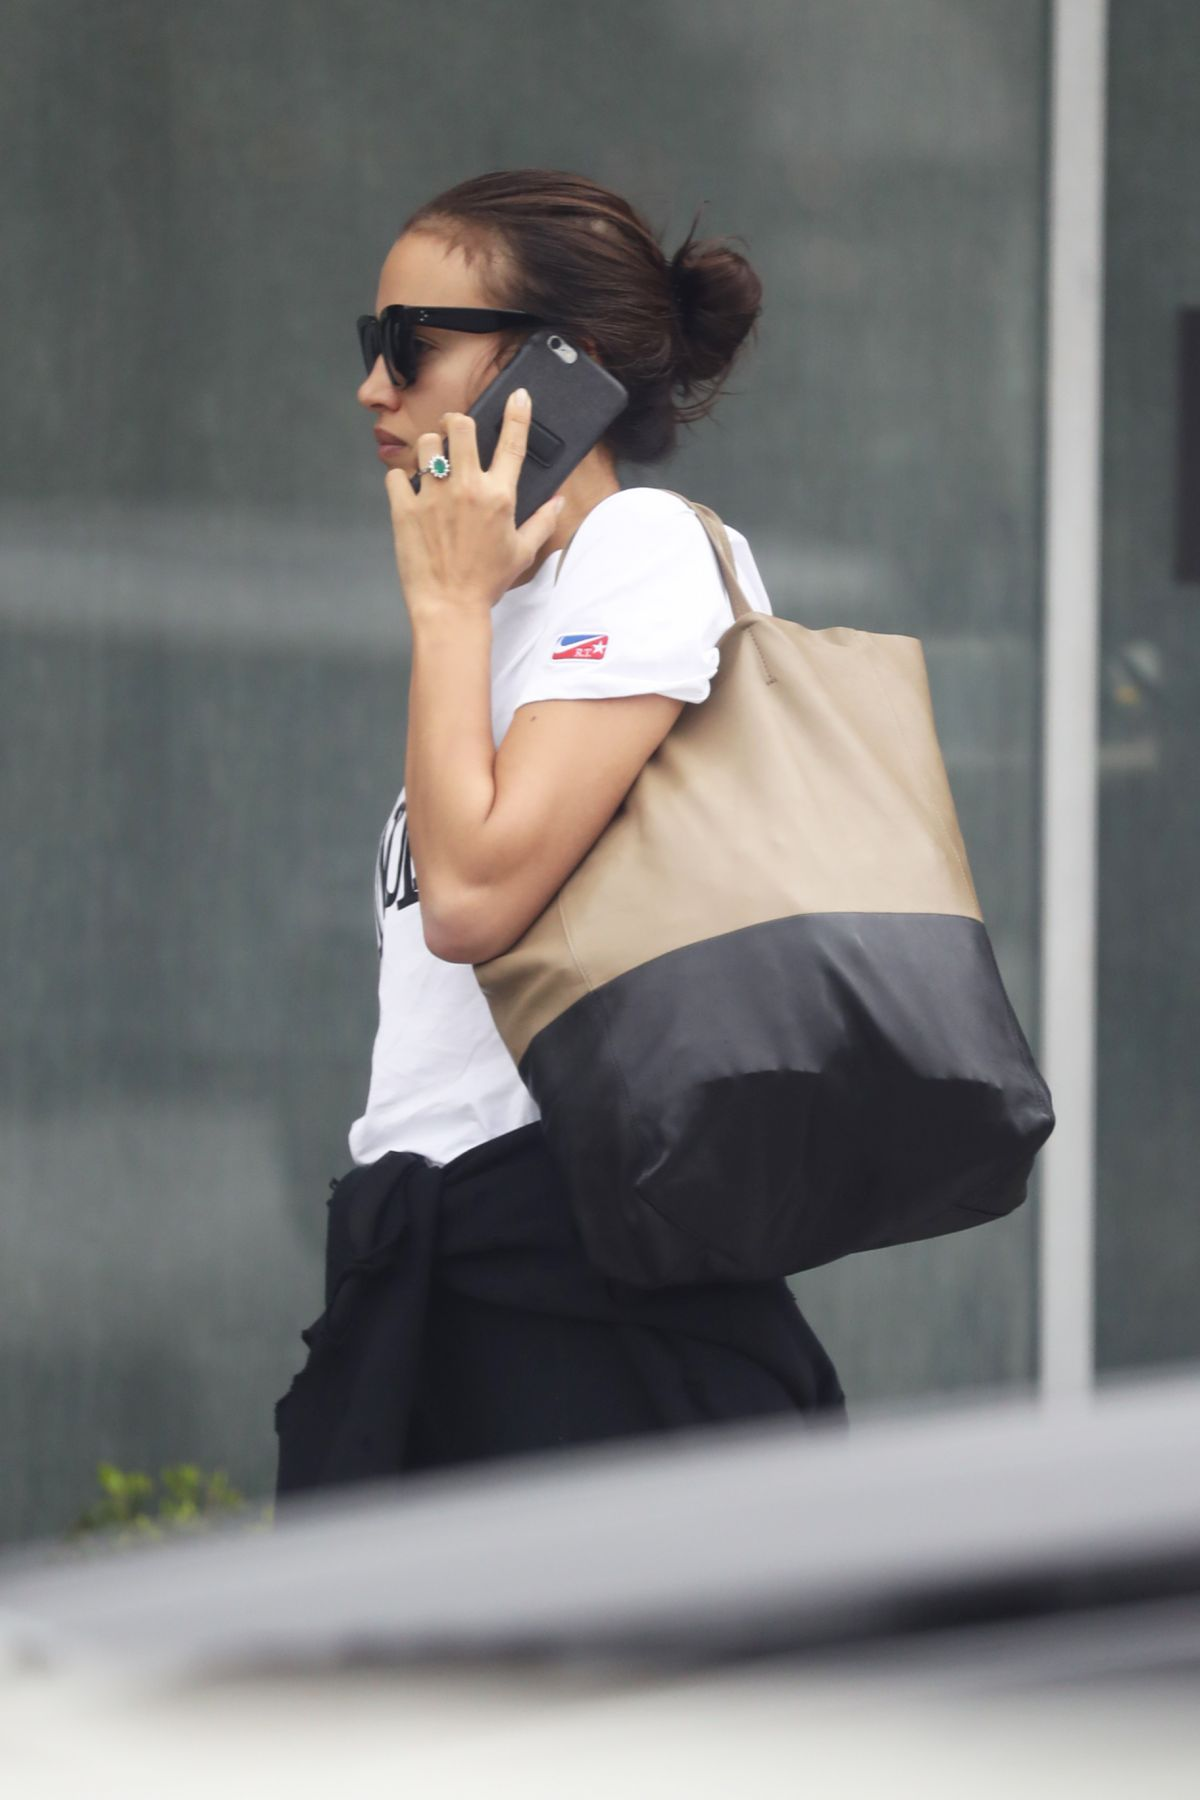 Irina Shayk Seen chatting on the phone arriving to her morning workout in Los Angeles